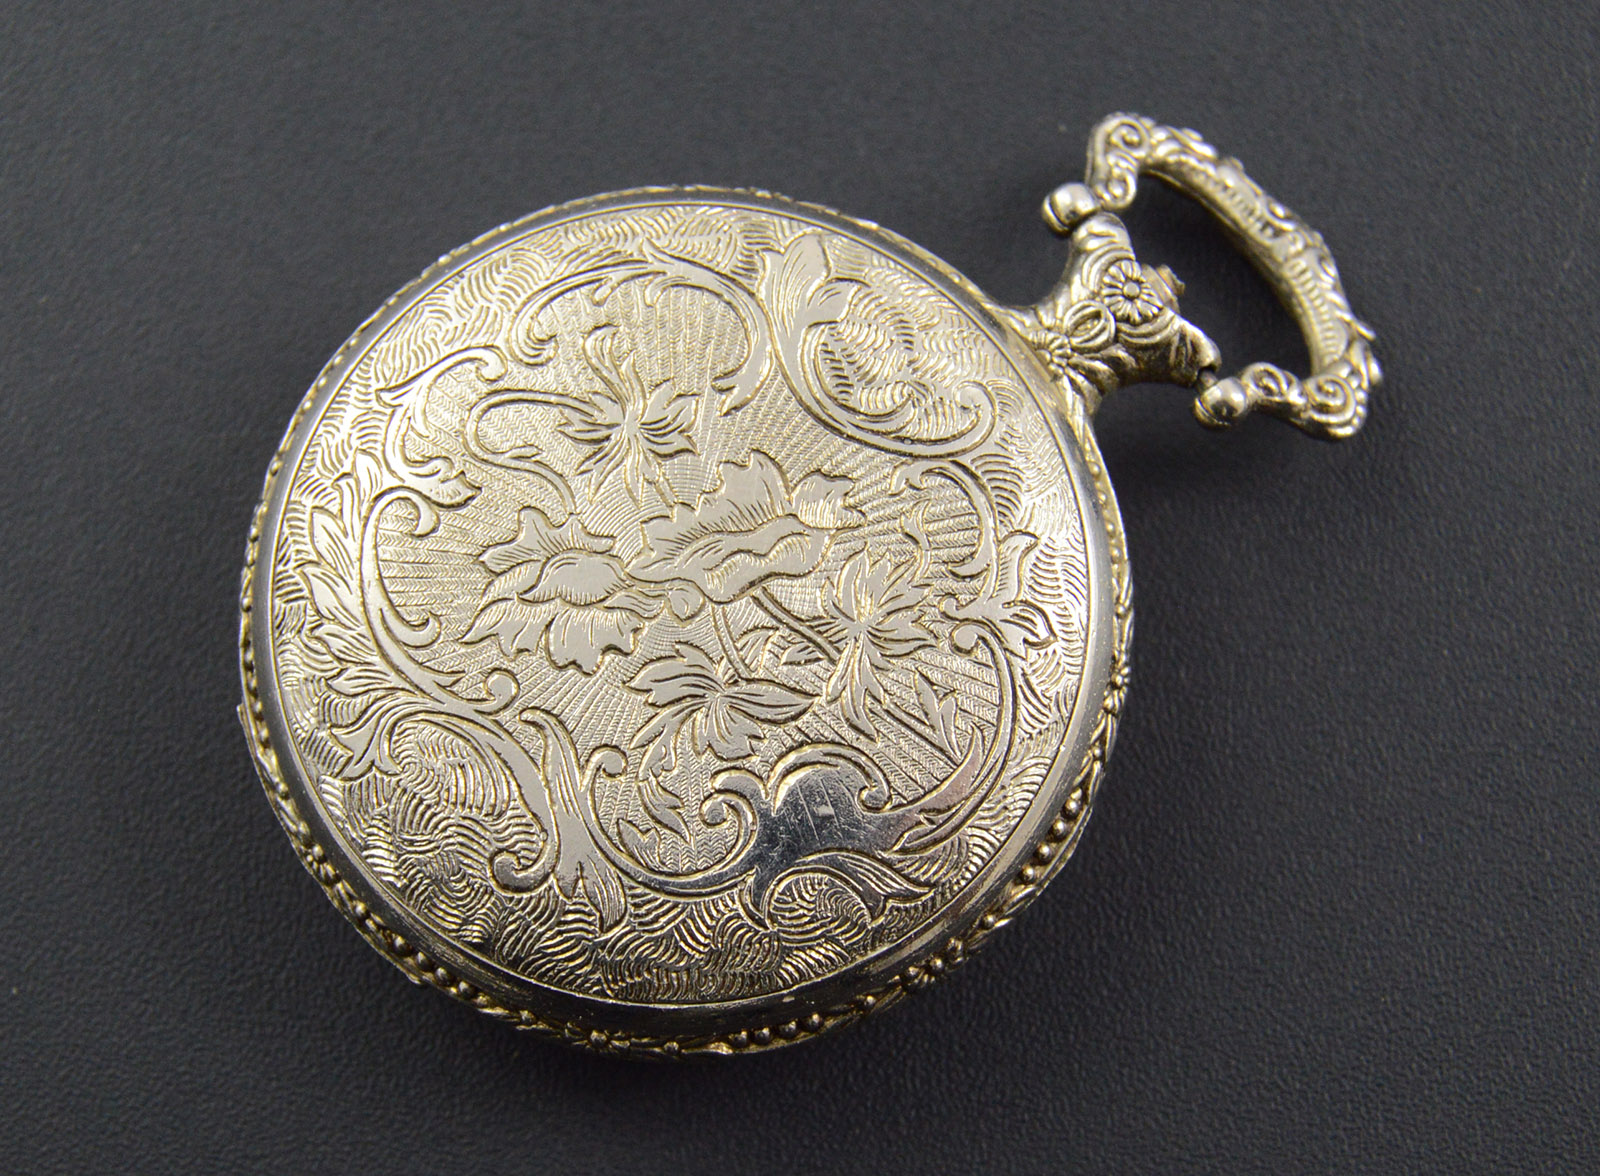 641g vintage lucerne 343 mm face pocket watch property